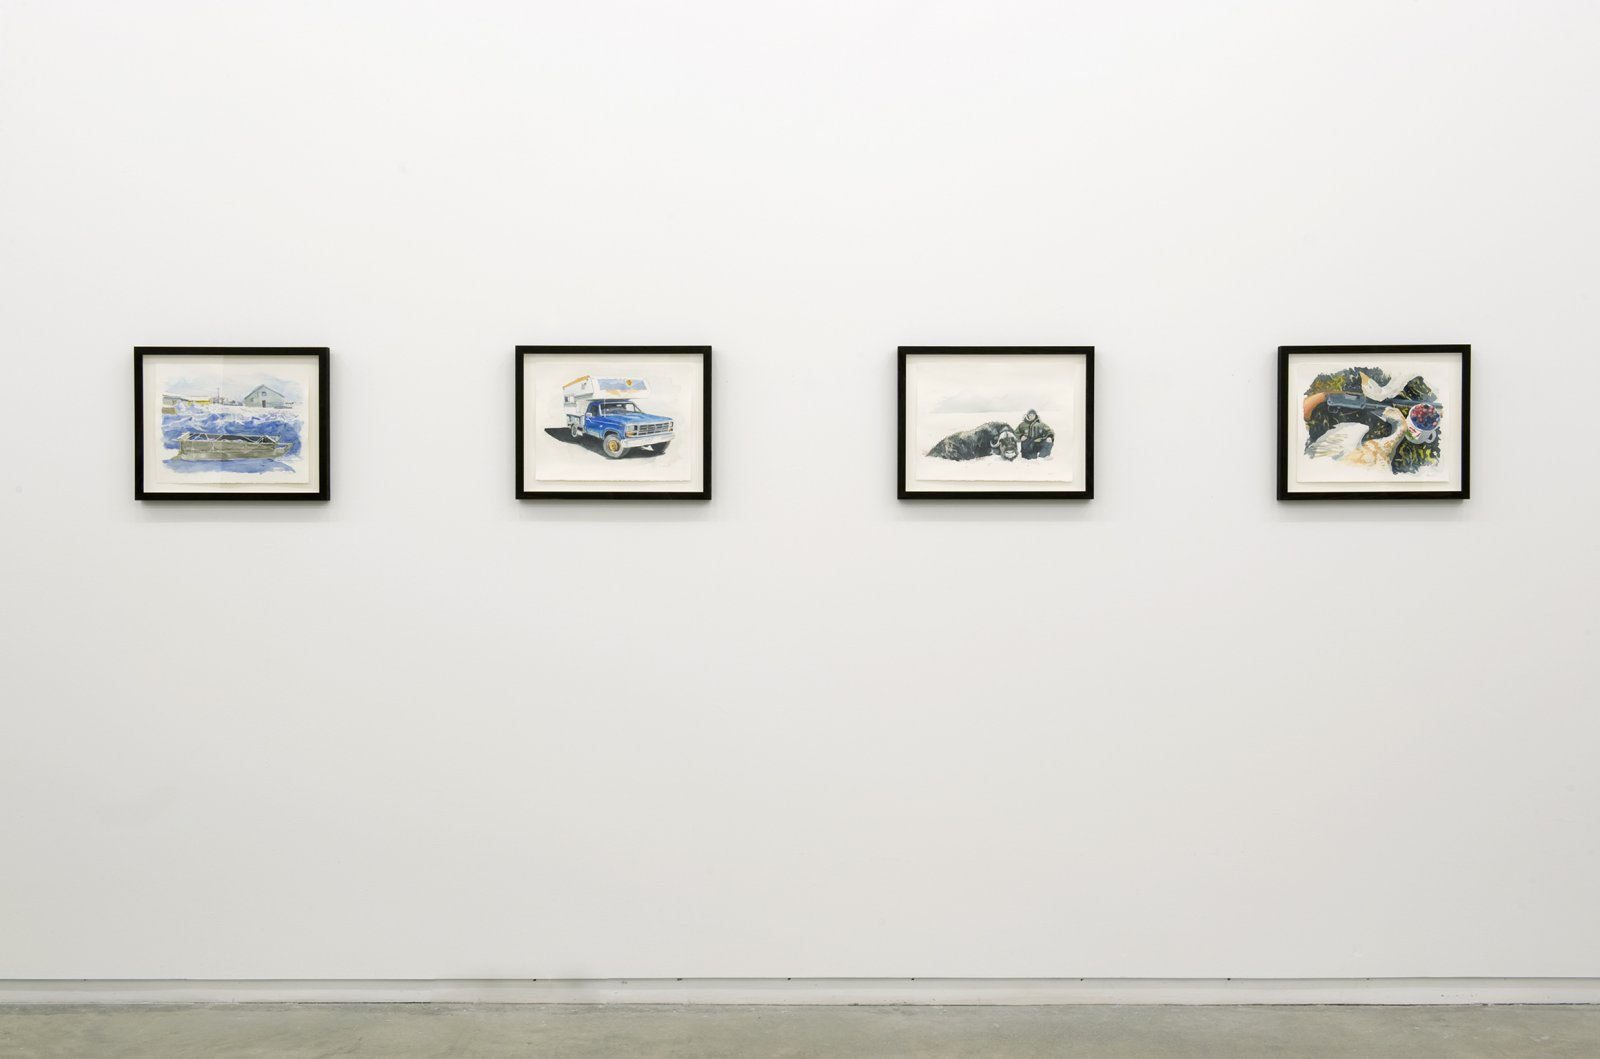 ​Kevin Schmidt, installation view, Catriona Jeffries, 2010 by Kevin Schmidt